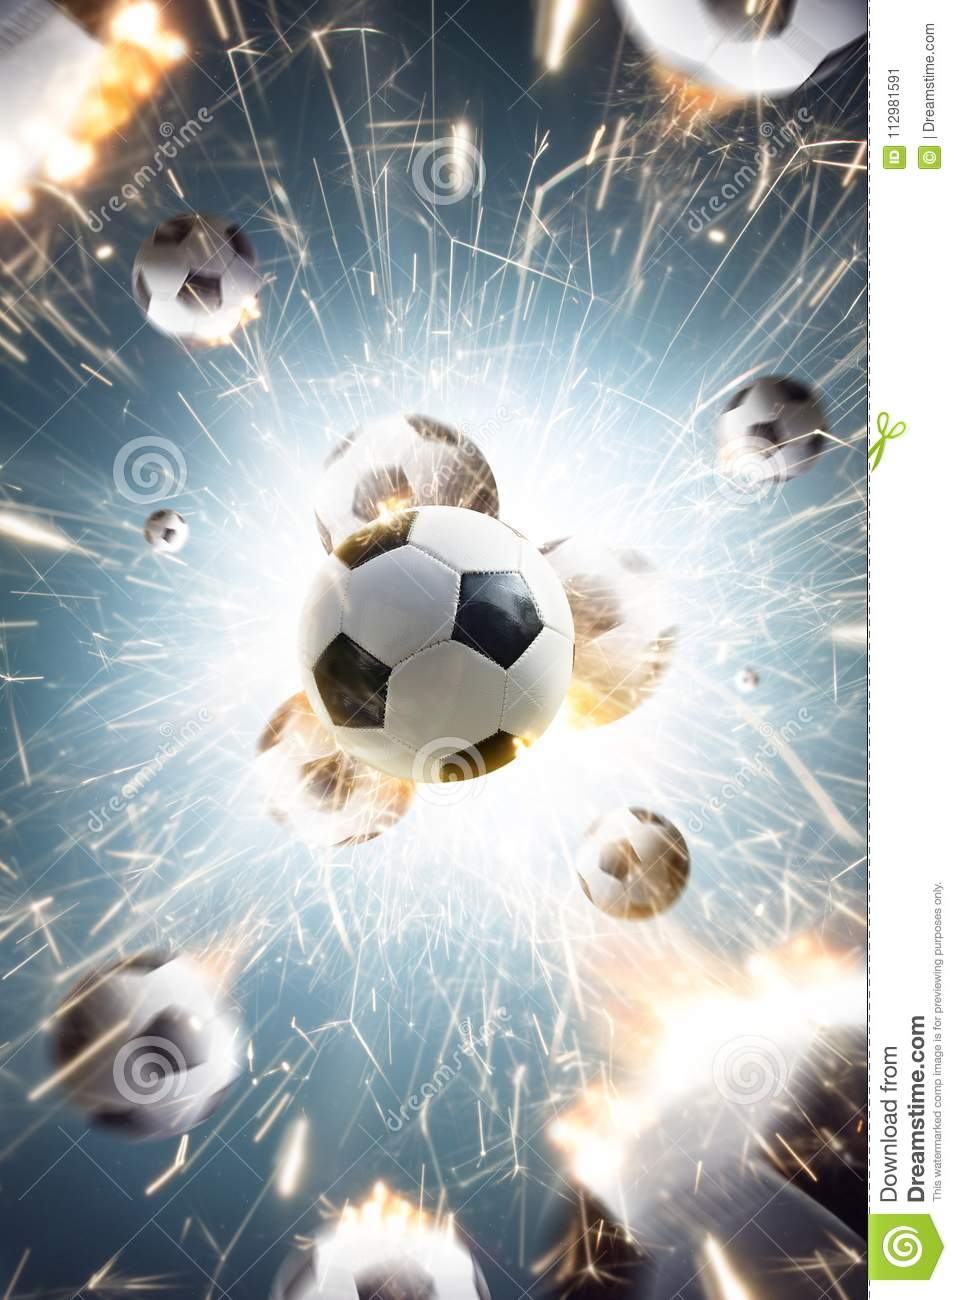 Soccer balls with fire sparks in action